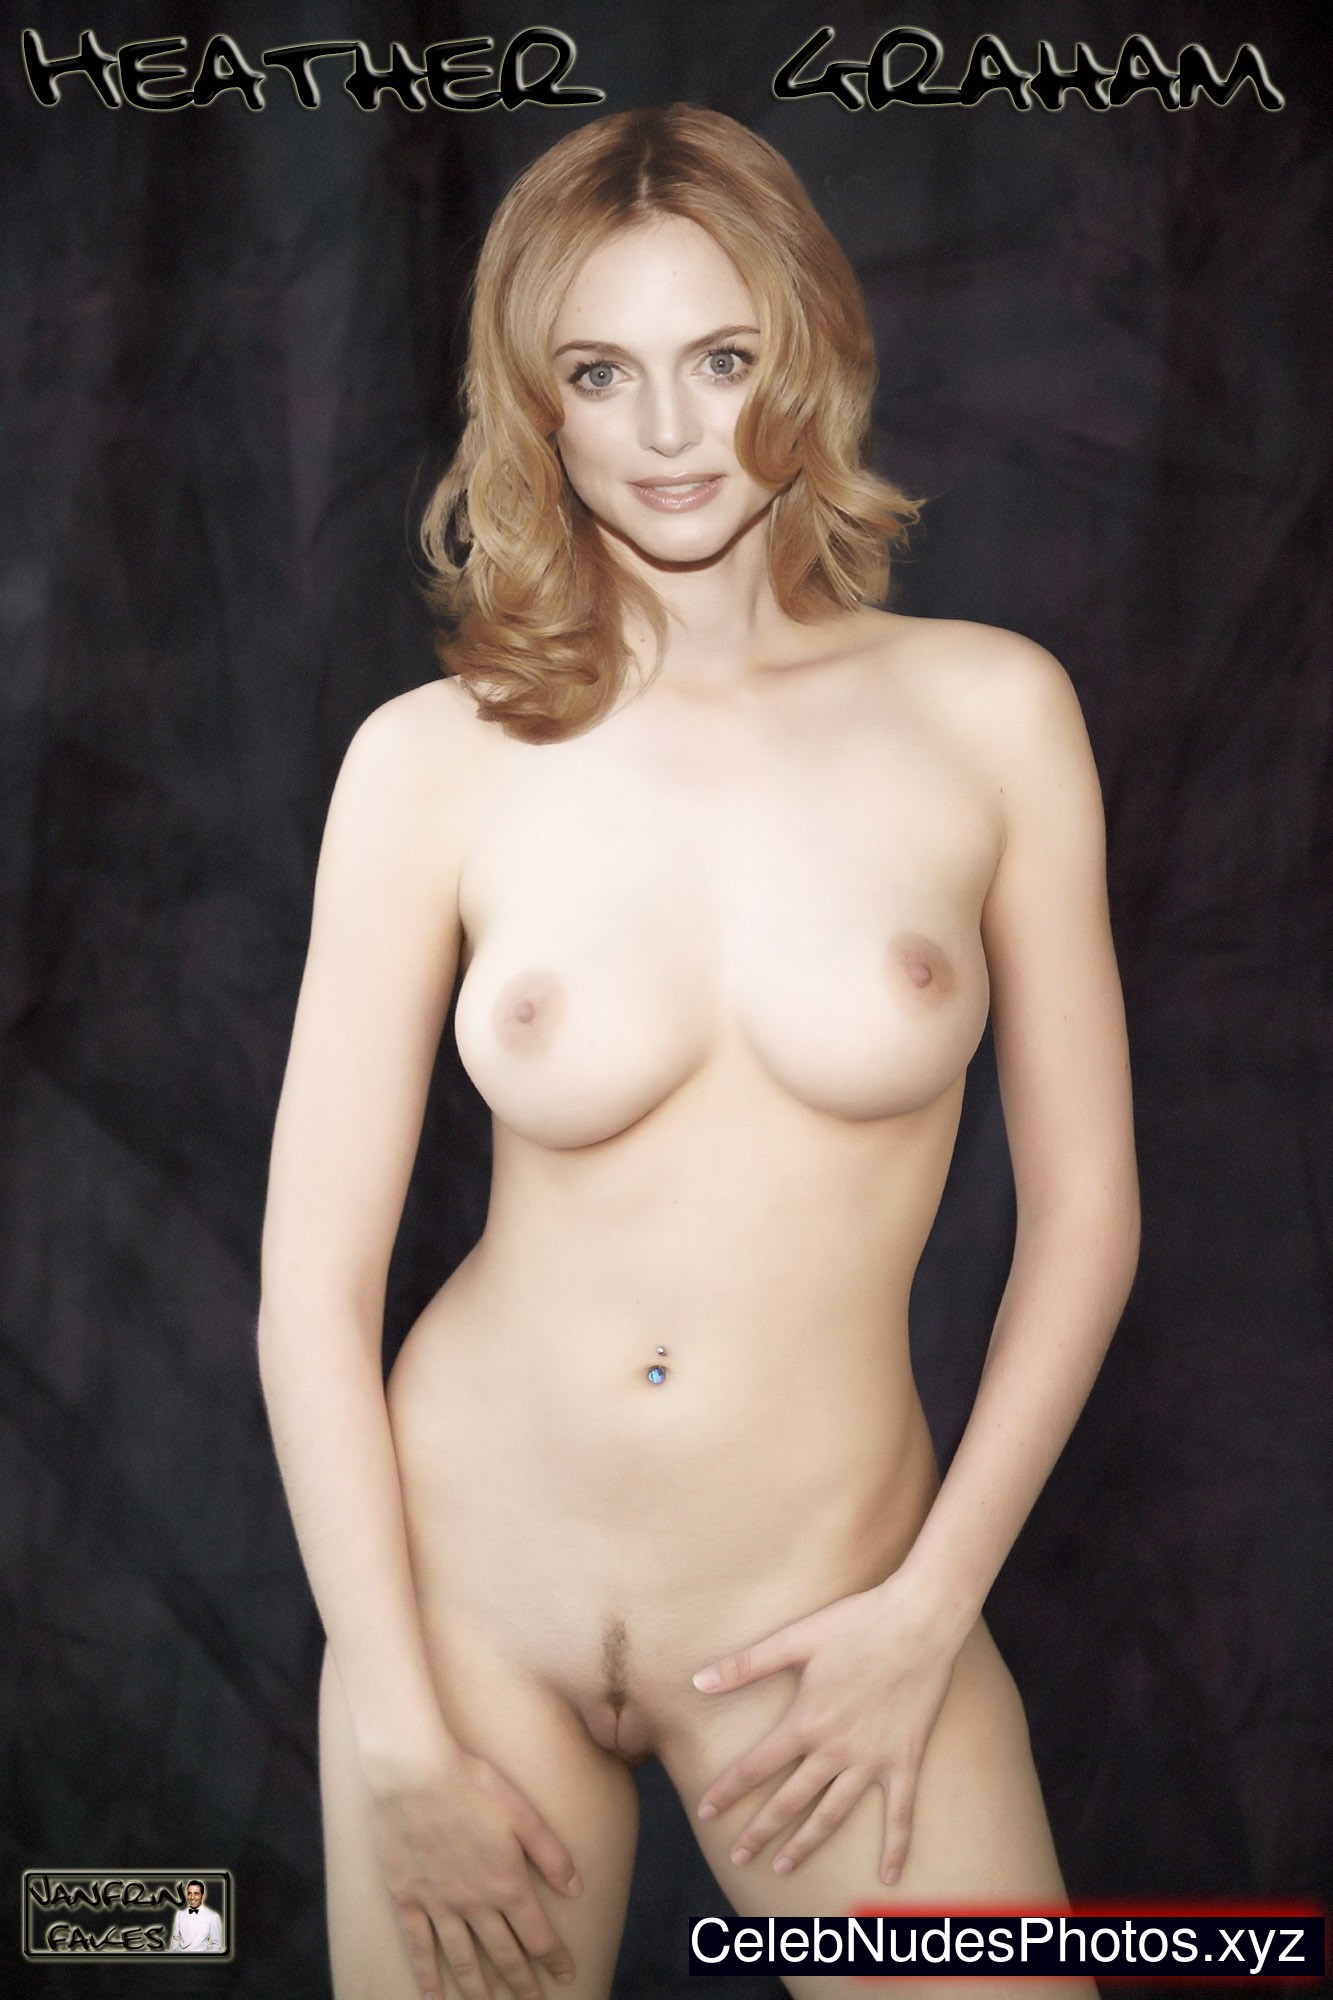 Heather graham nude sorry, that